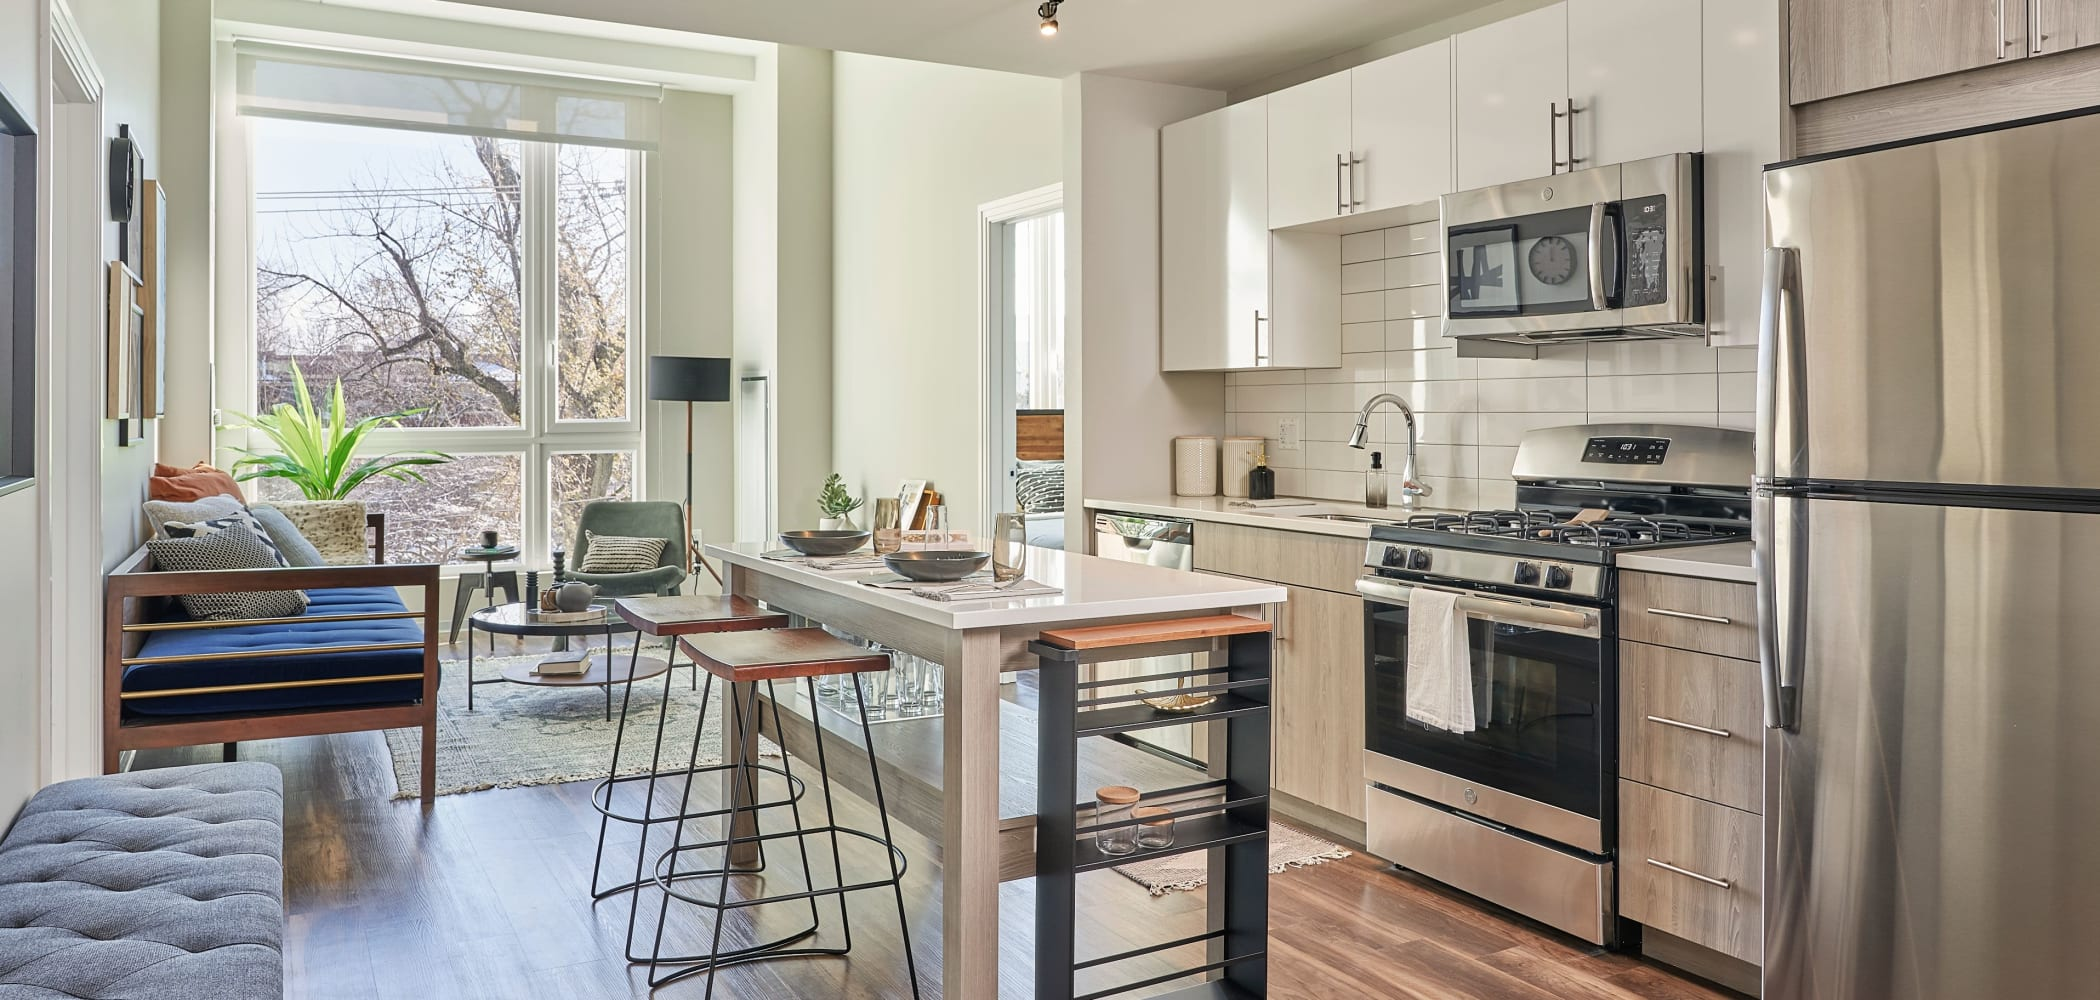 Kitchen with wood style flooring at The Link Evanston in Evanston, Illinois